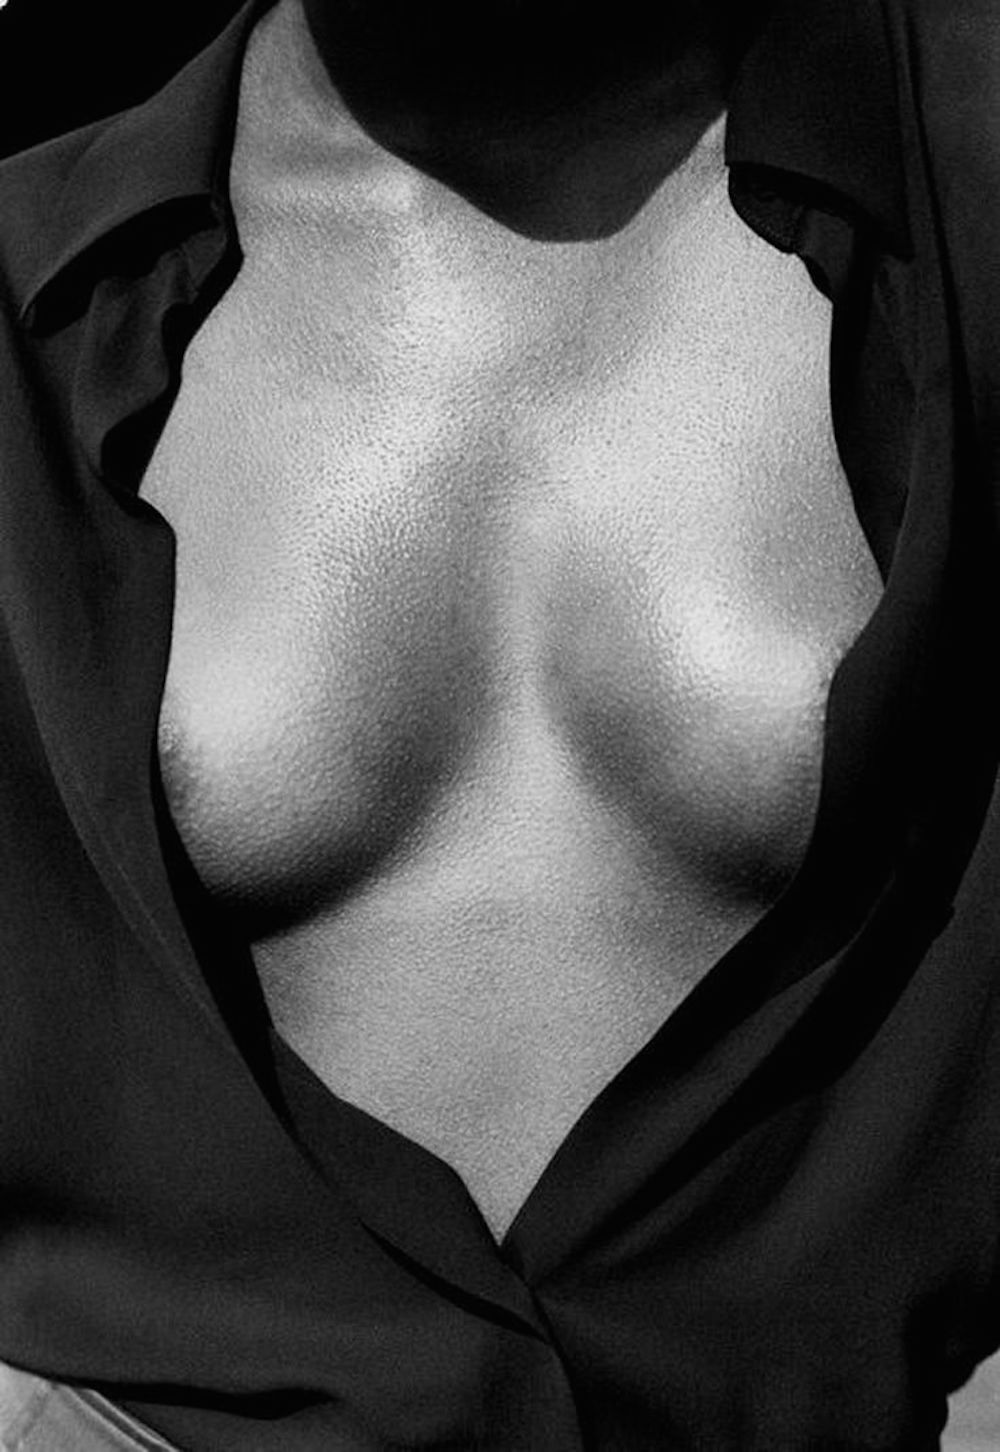 open-shirt-heat-wave-inspiration-black-and-white-oracle-fox